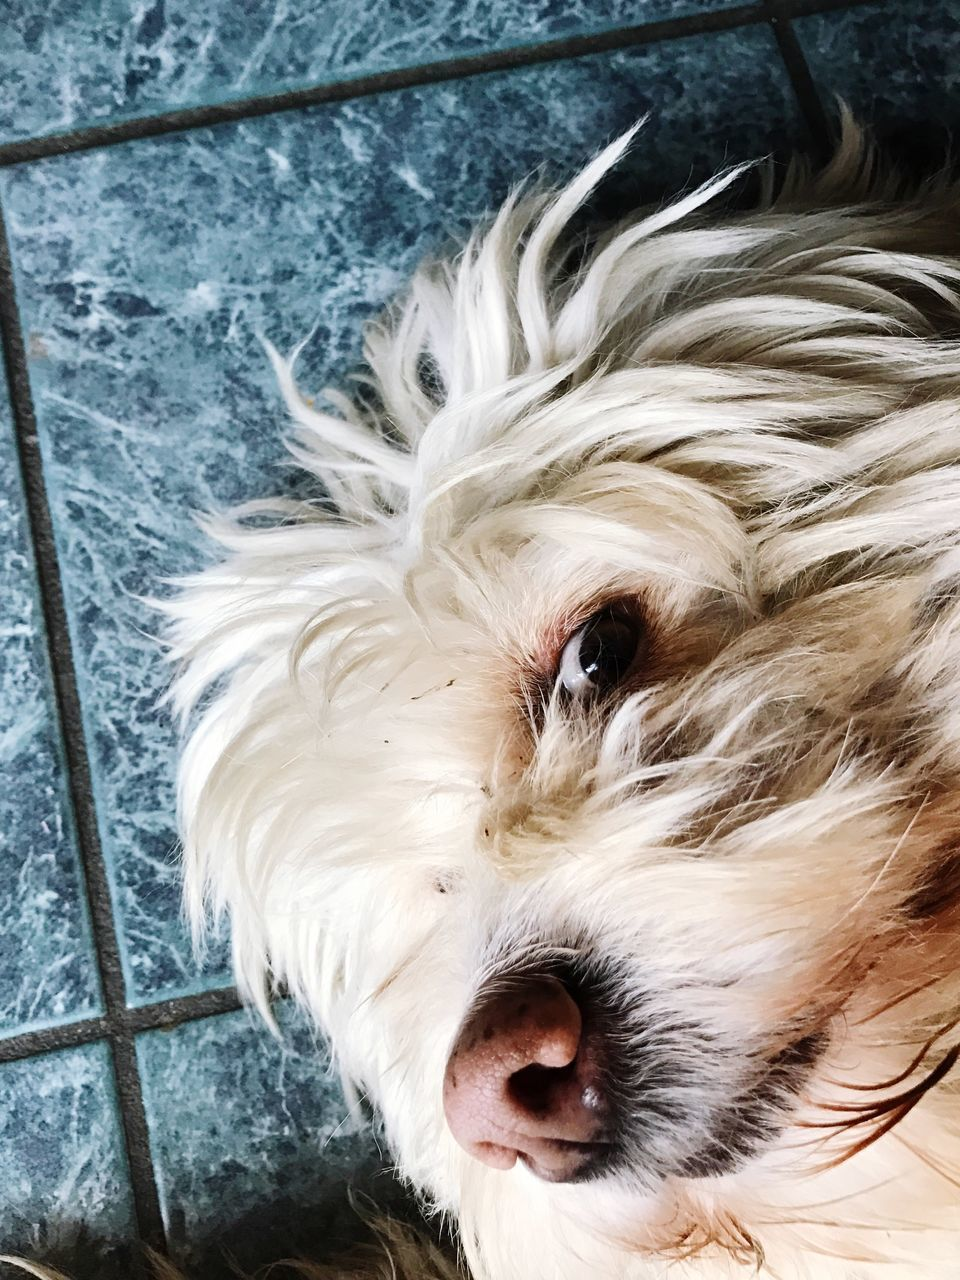 one animal, domestic, mammal, canine, dog, animal themes, domestic animals, animal, pets, hair, vertebrate, animal hair, no people, close-up, portrait, looking at camera, animal body part, high angle view, animal head, indoors, flooring, tiled floor, small